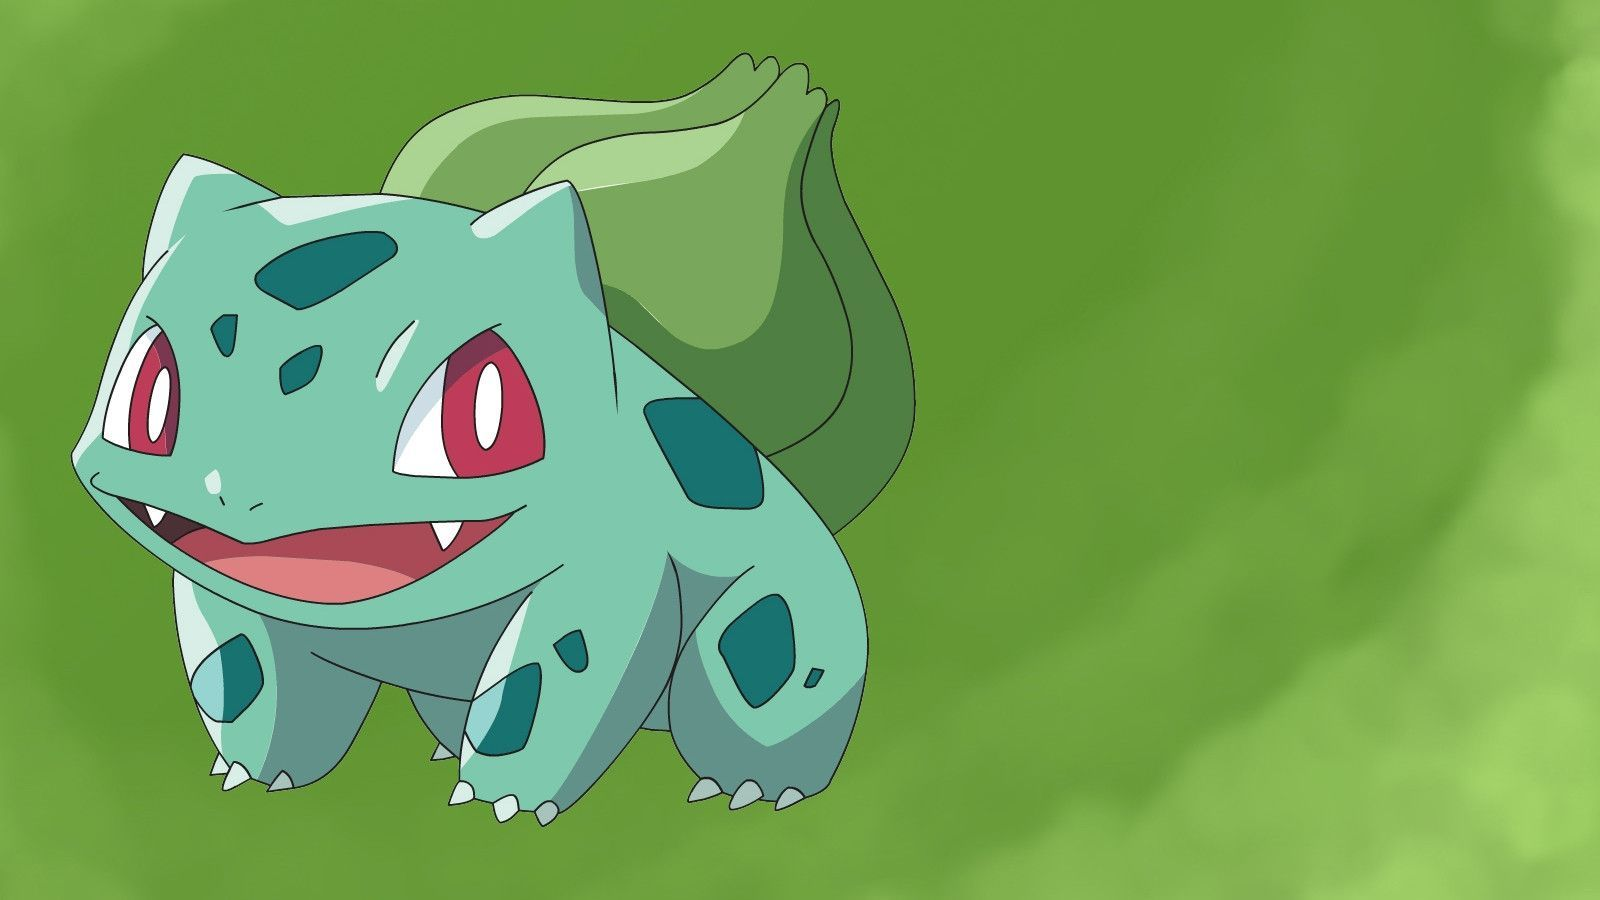 Bulbasaur Wallpapers PUY799 Collection